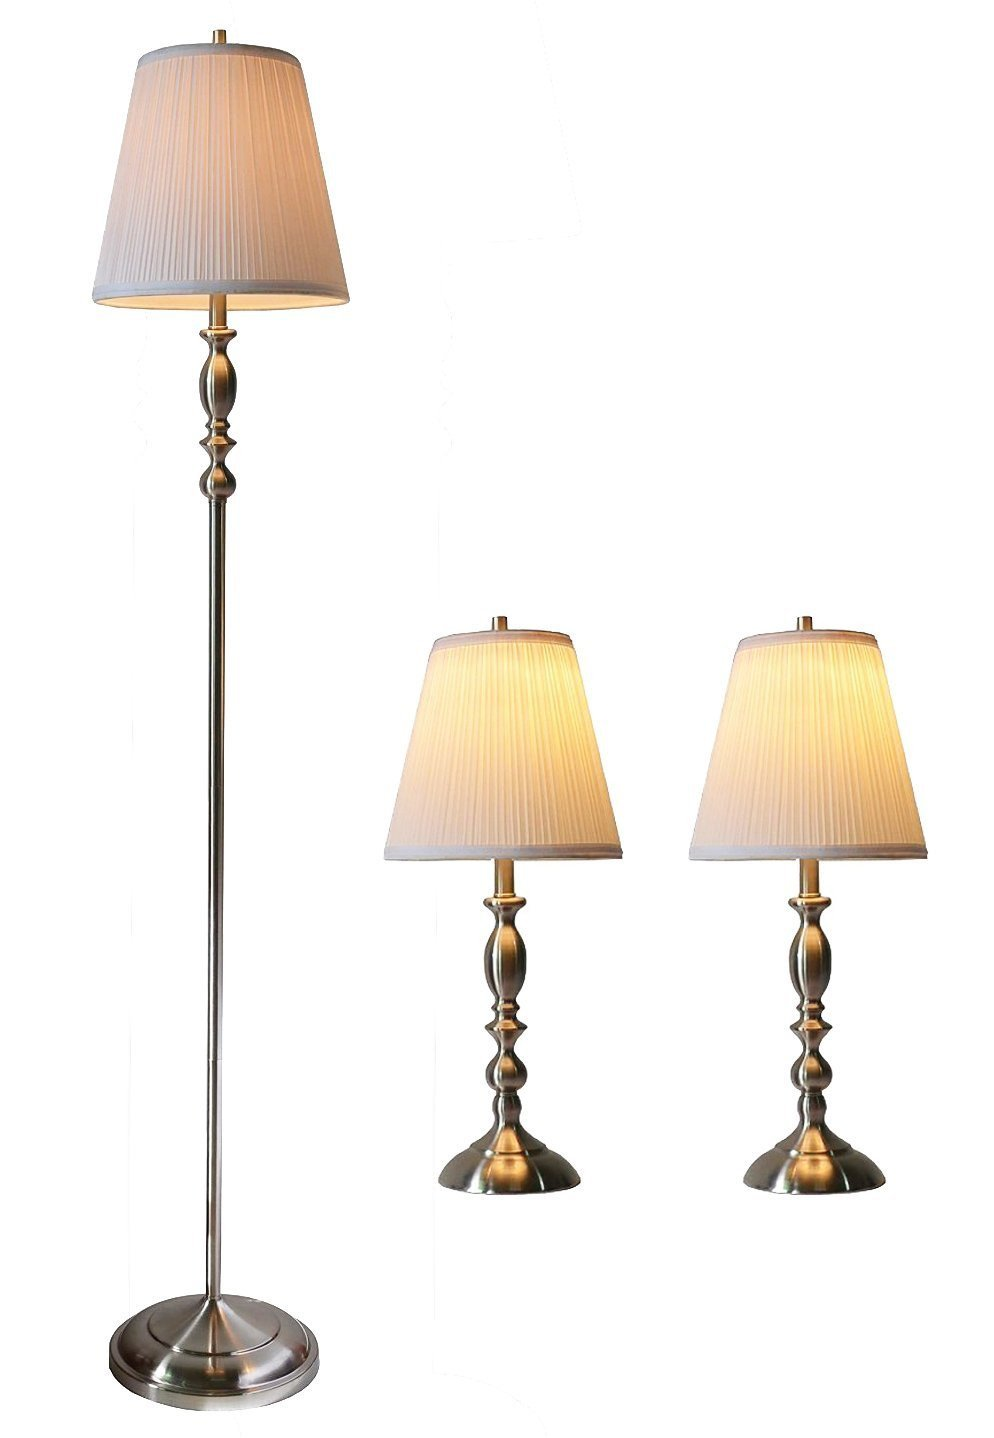 Eleanor 3 piece table and floor lamp set with shades urbanest eleanor 3 piece table and floor lamp set with shades geotapseo Gallery